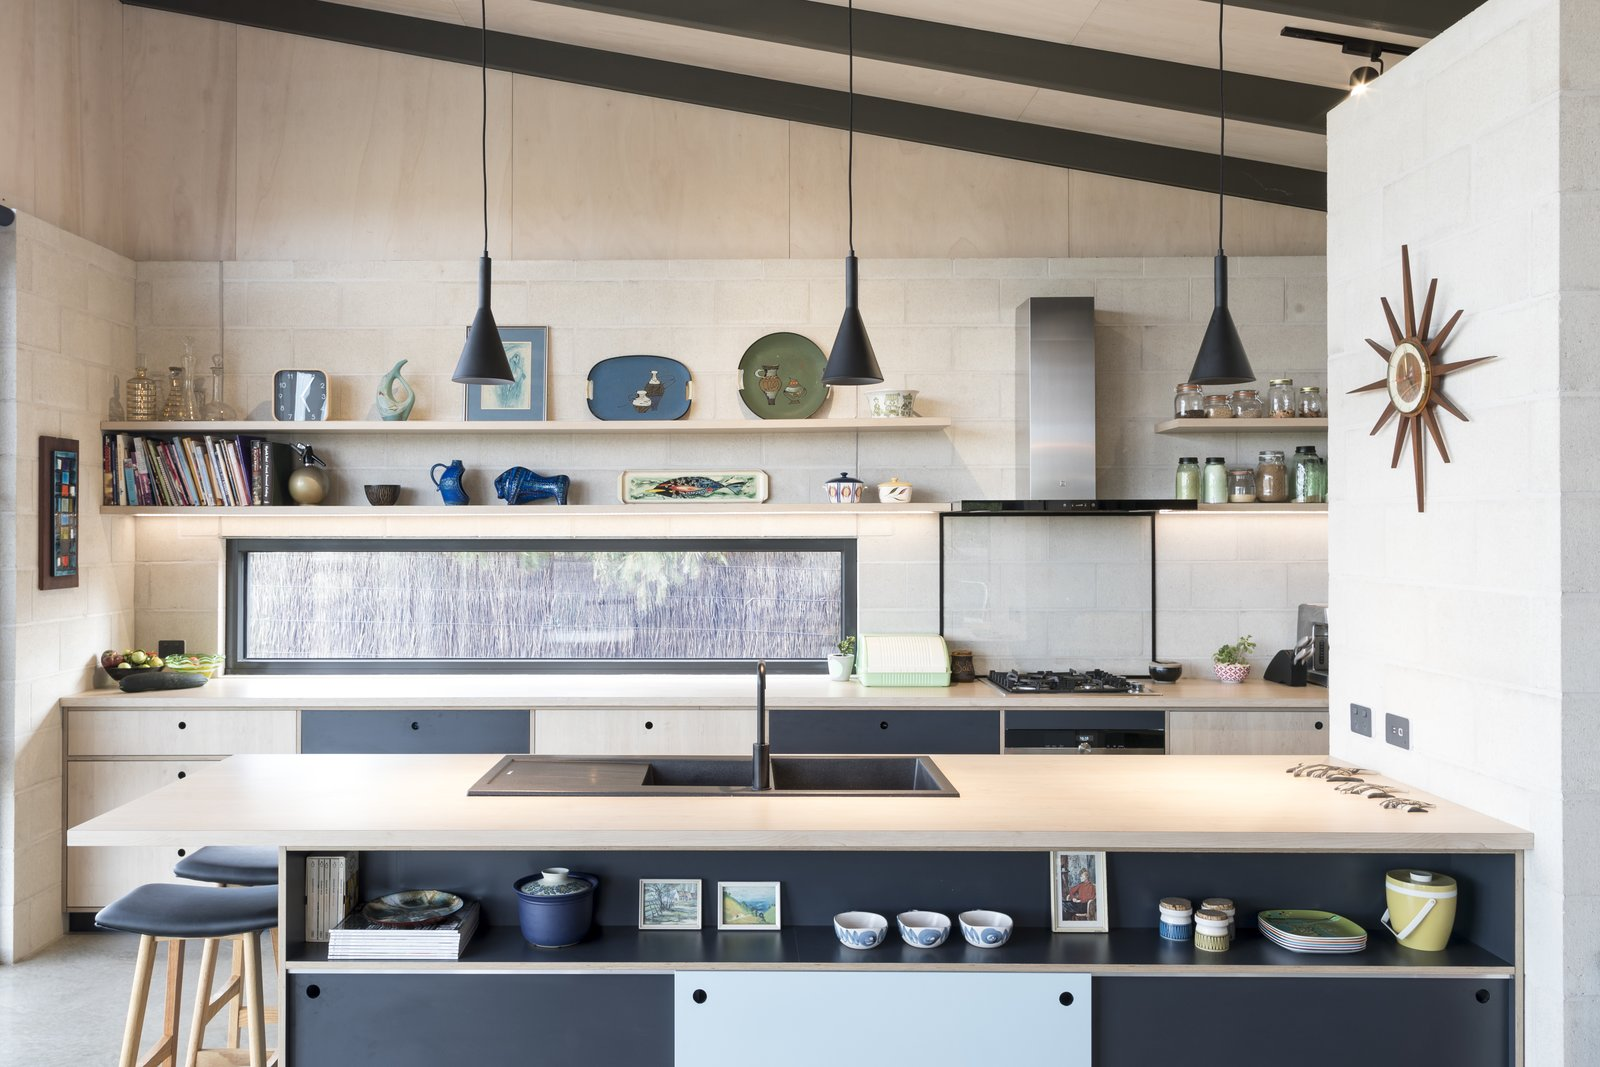 Kitchen, Ceiling Lighting, Laminate Counter, Cooktops, Concrete Floor, Pendant Lighting, Laminate Cabinet, Track Lighting, Drop In Sink, Range, and Brick Backsplashe Kitchen  The Golf Course House by Bespoke Architects